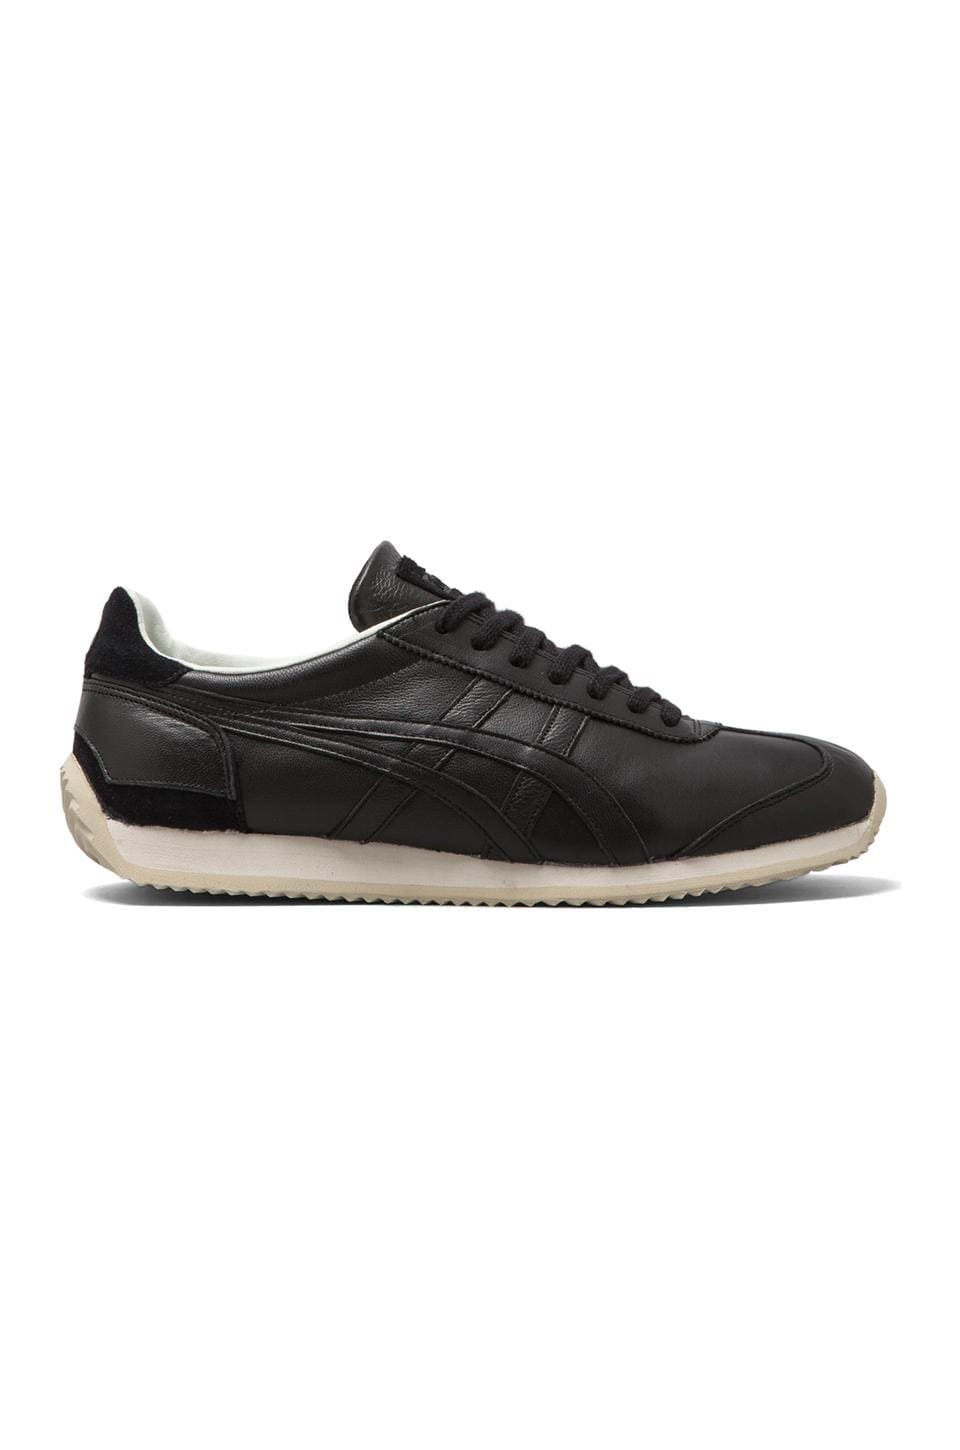 Onitsuka Tiger California 78 Anniversary in Black/Black